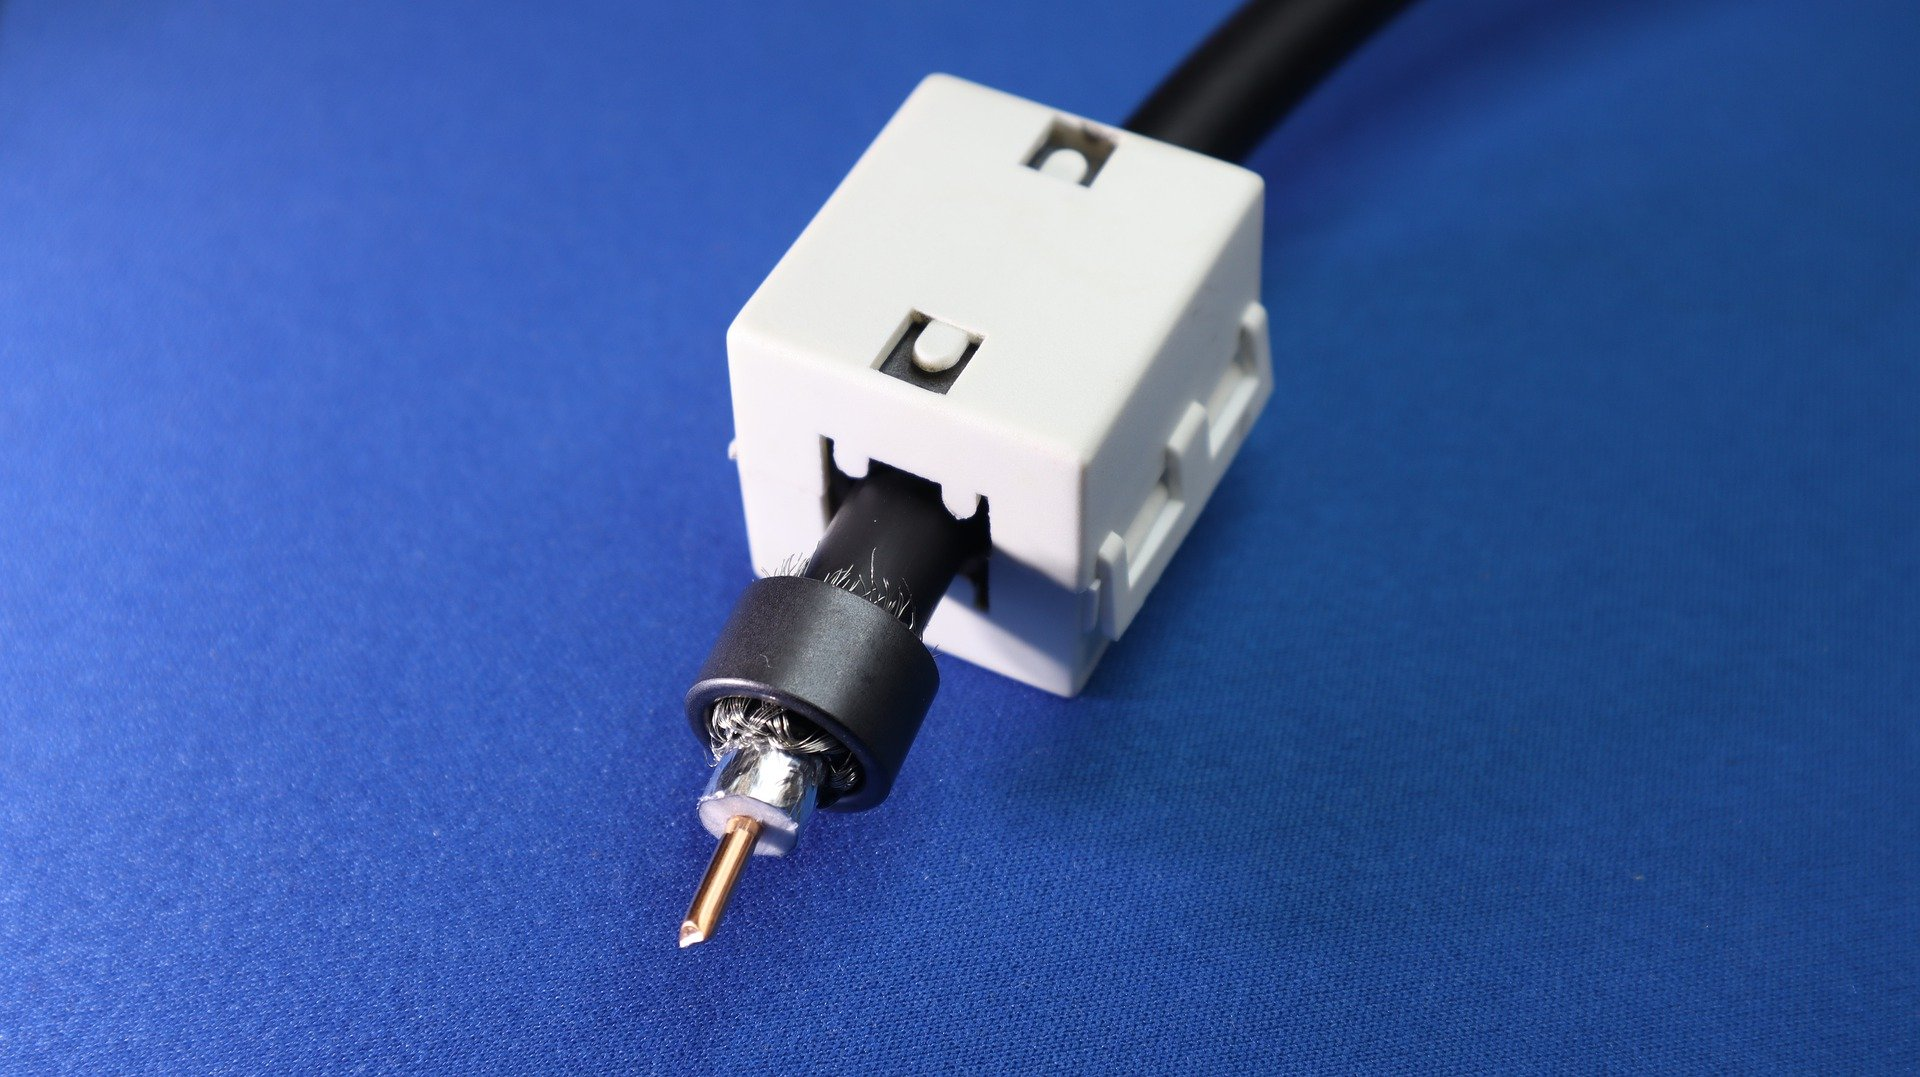 What Kind Of Cable Uses Bnc Connector?